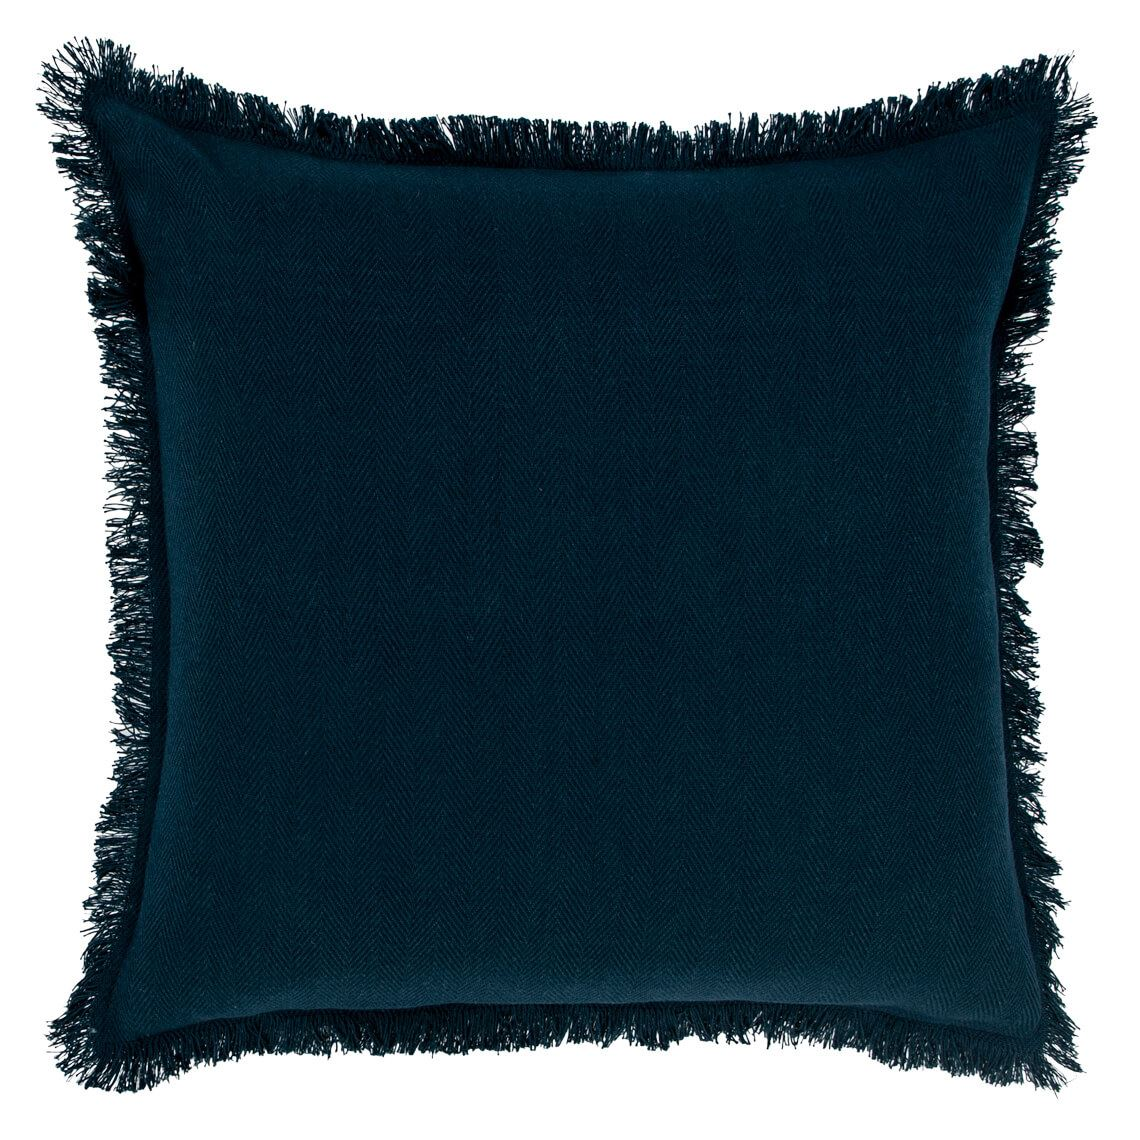 Beatrice Cushion, Navy Size W 50cm x D 50cm x H 8cm in Navy Blue Freedom